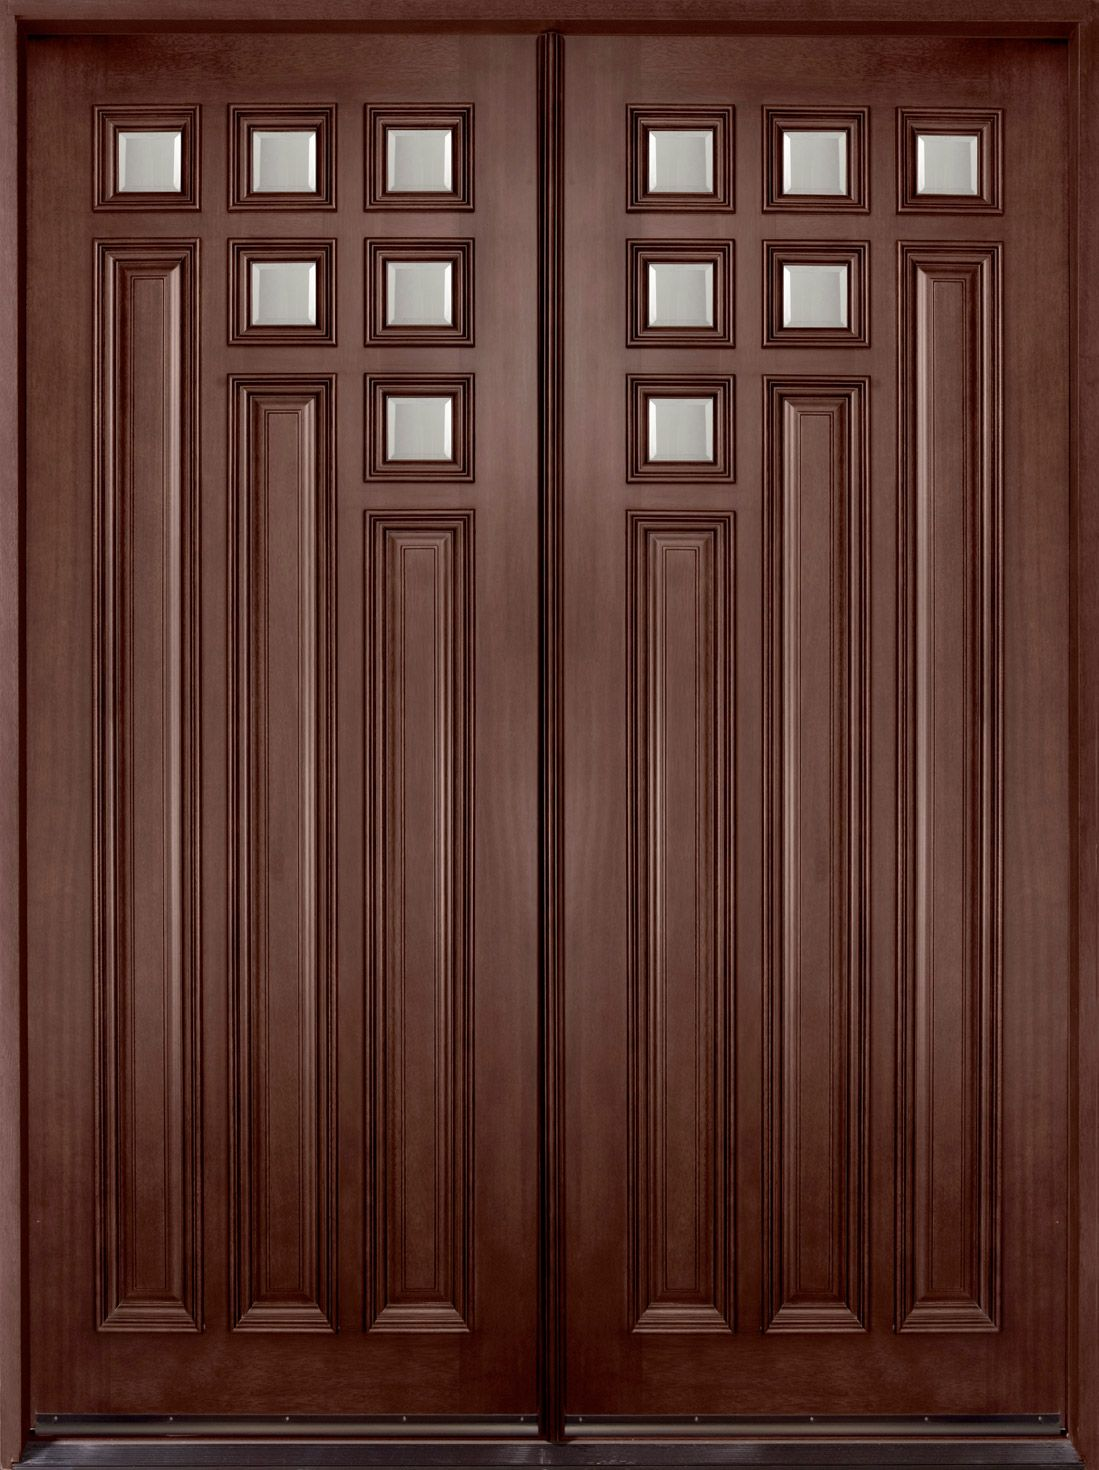 inspiring double fiberglass entry door as furniture for home exterior and front porch decoration endearing